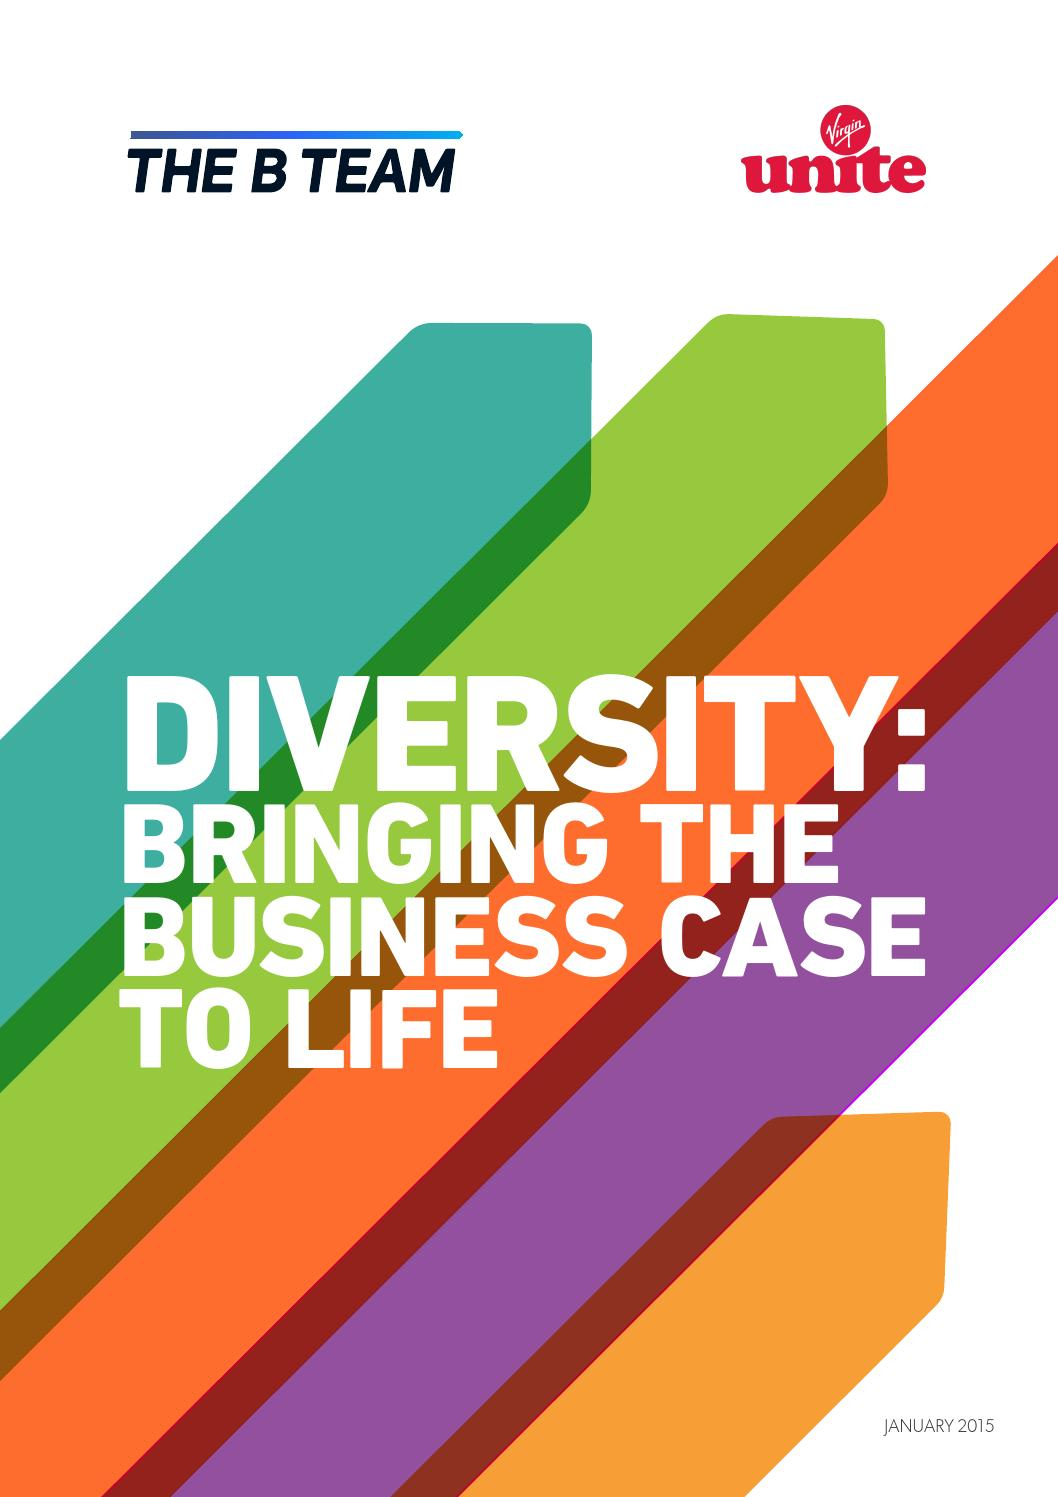 the business case for diversity james Business case for diversity report •••• 1 the business case for diversity: reality or wishful thinking with assistance from the association of legal administrators.